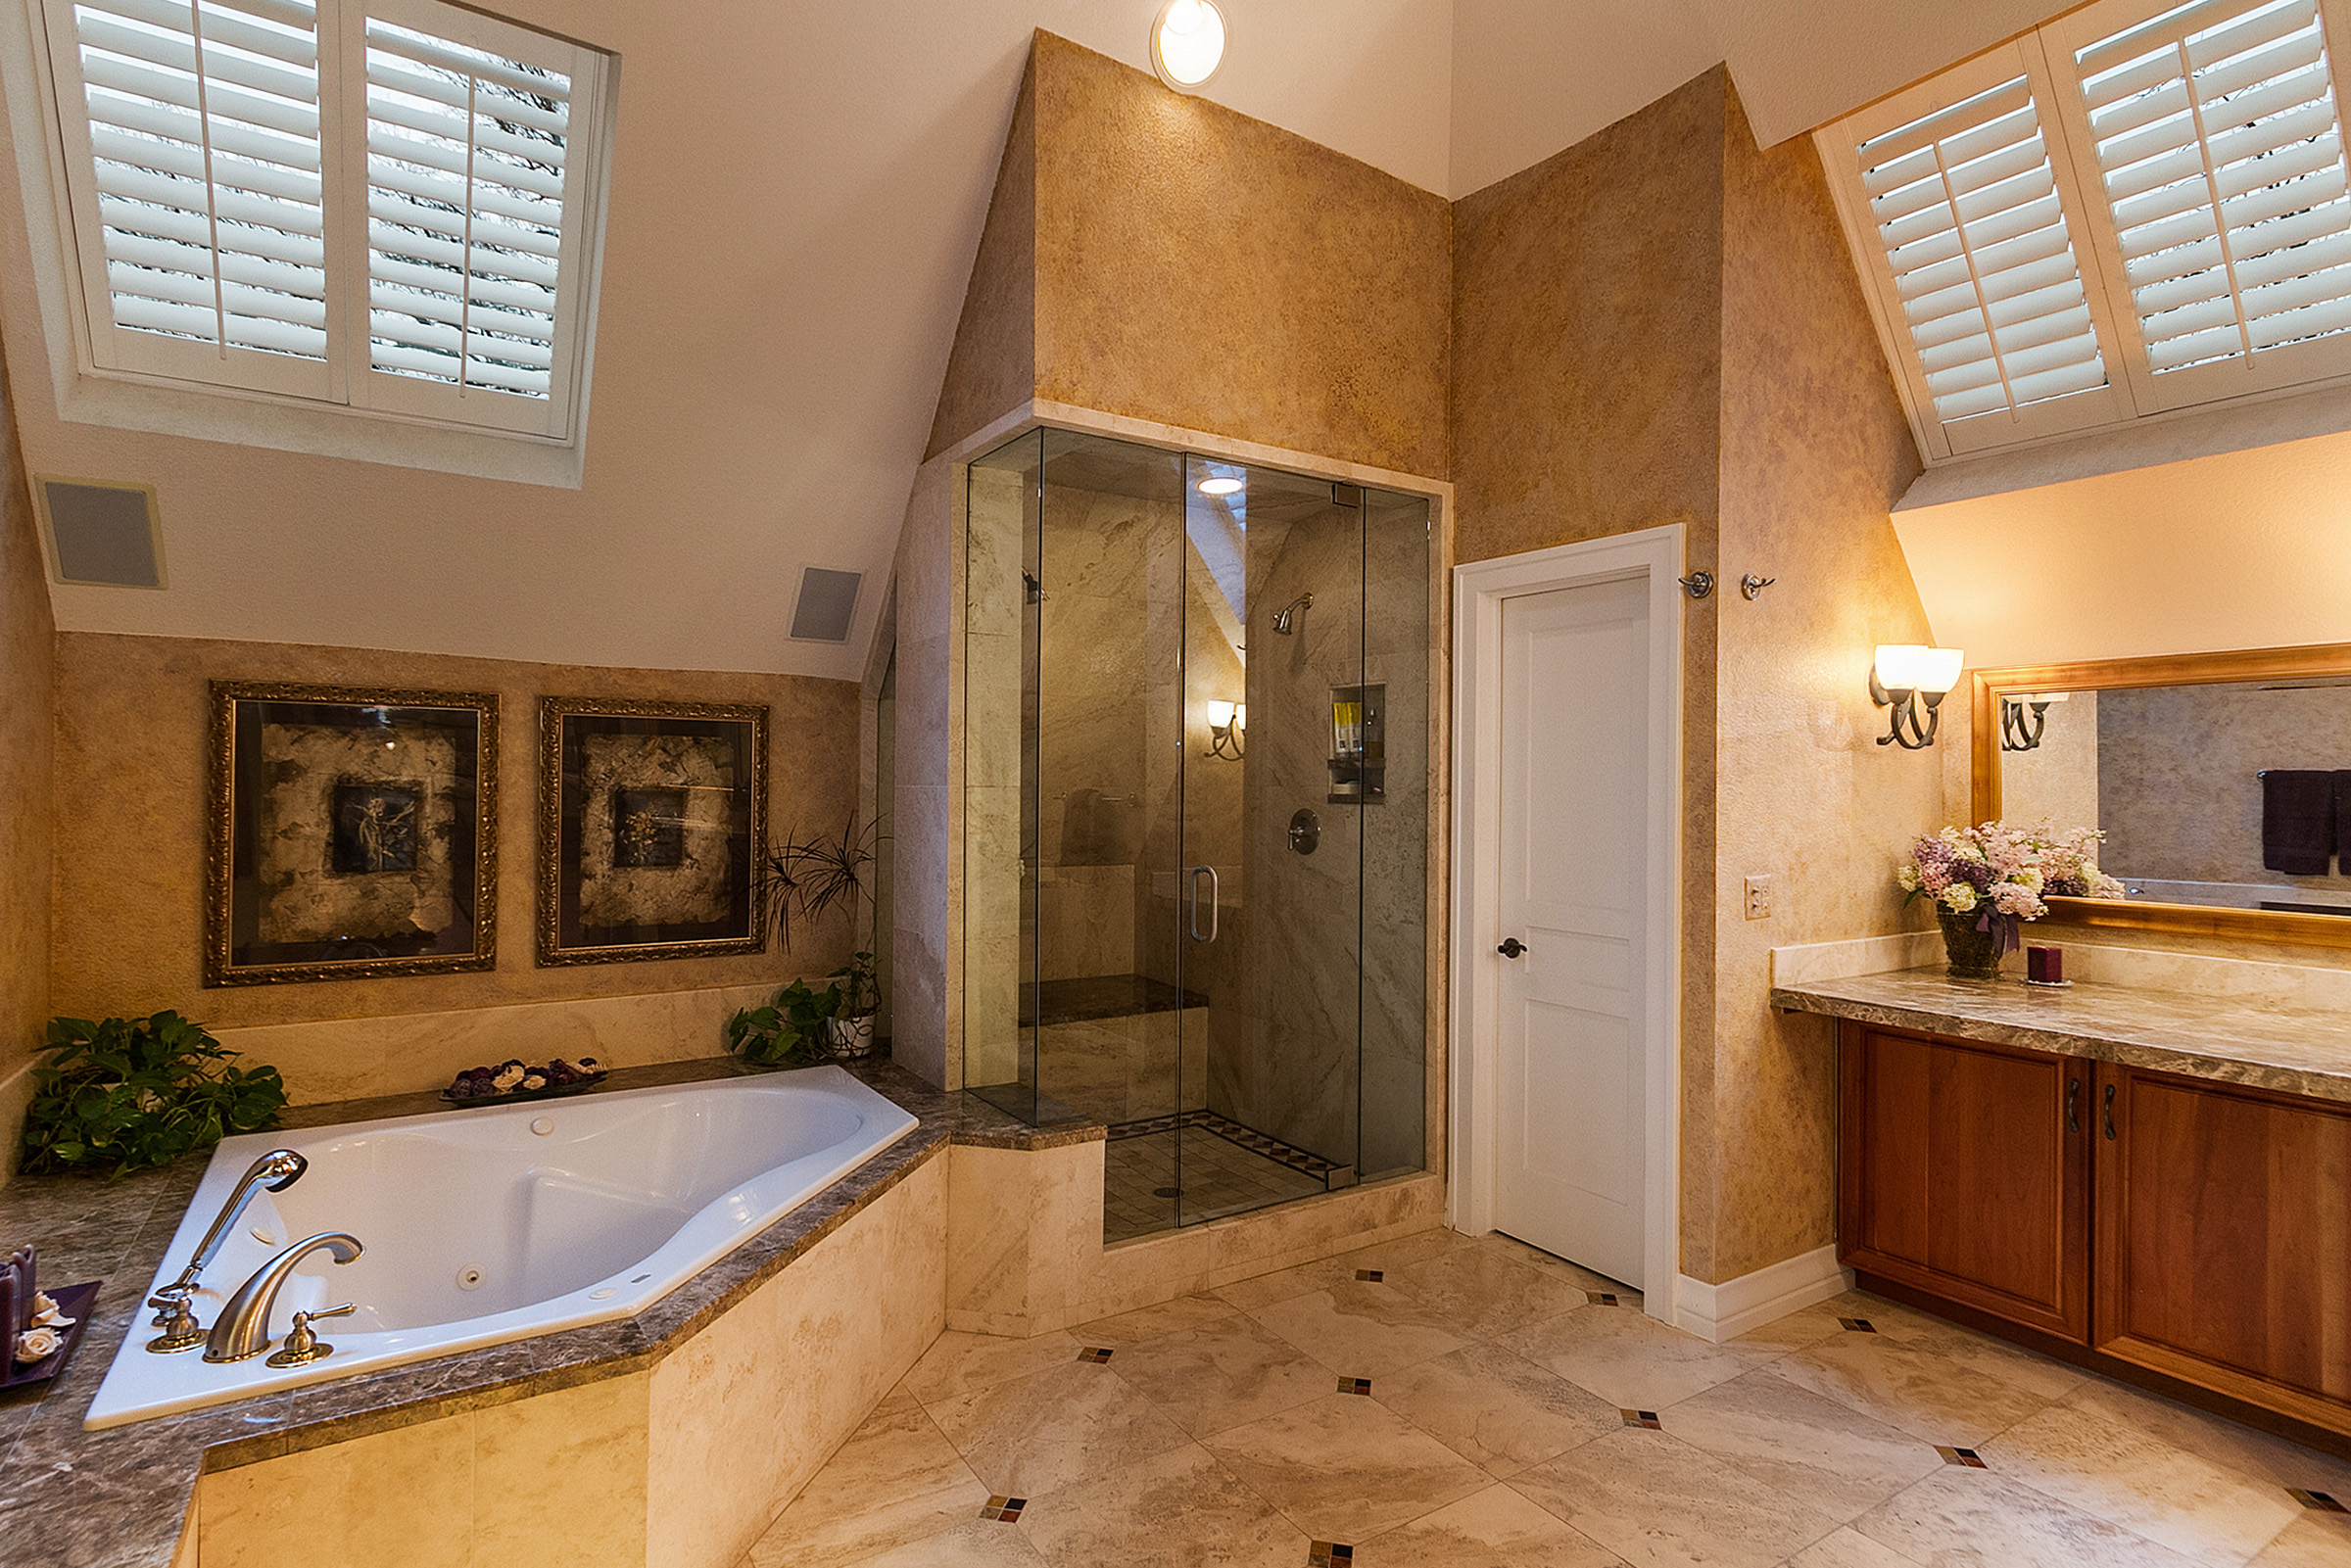 1183154_Master-Bath-Jetted-Tub-and-Double-Steam-Shower_high.jpg